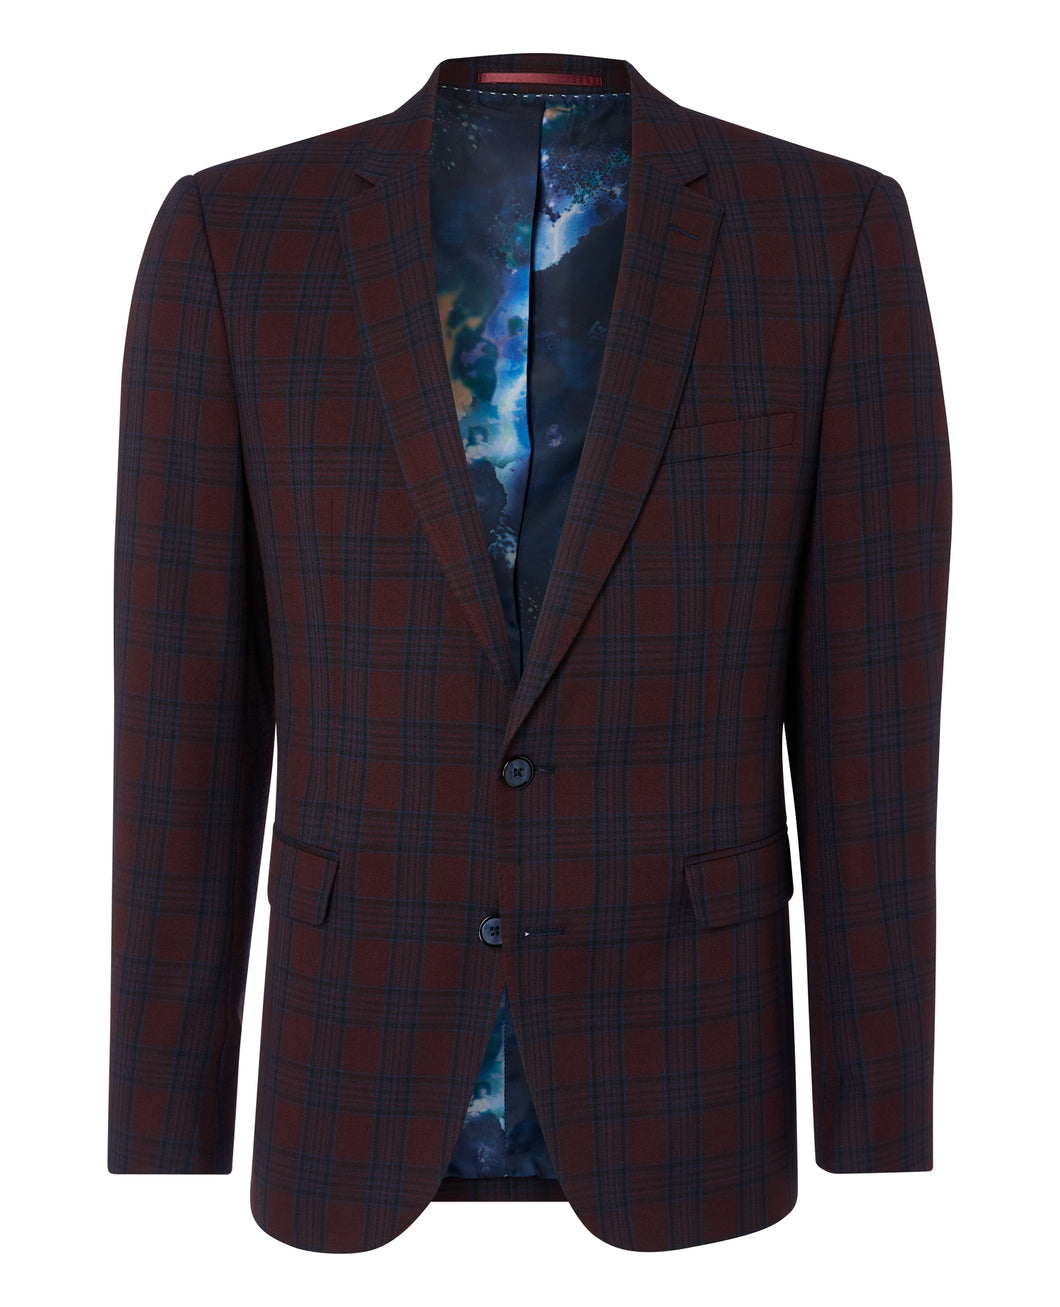 Remus Uomo - Tailored - Burgundy Check